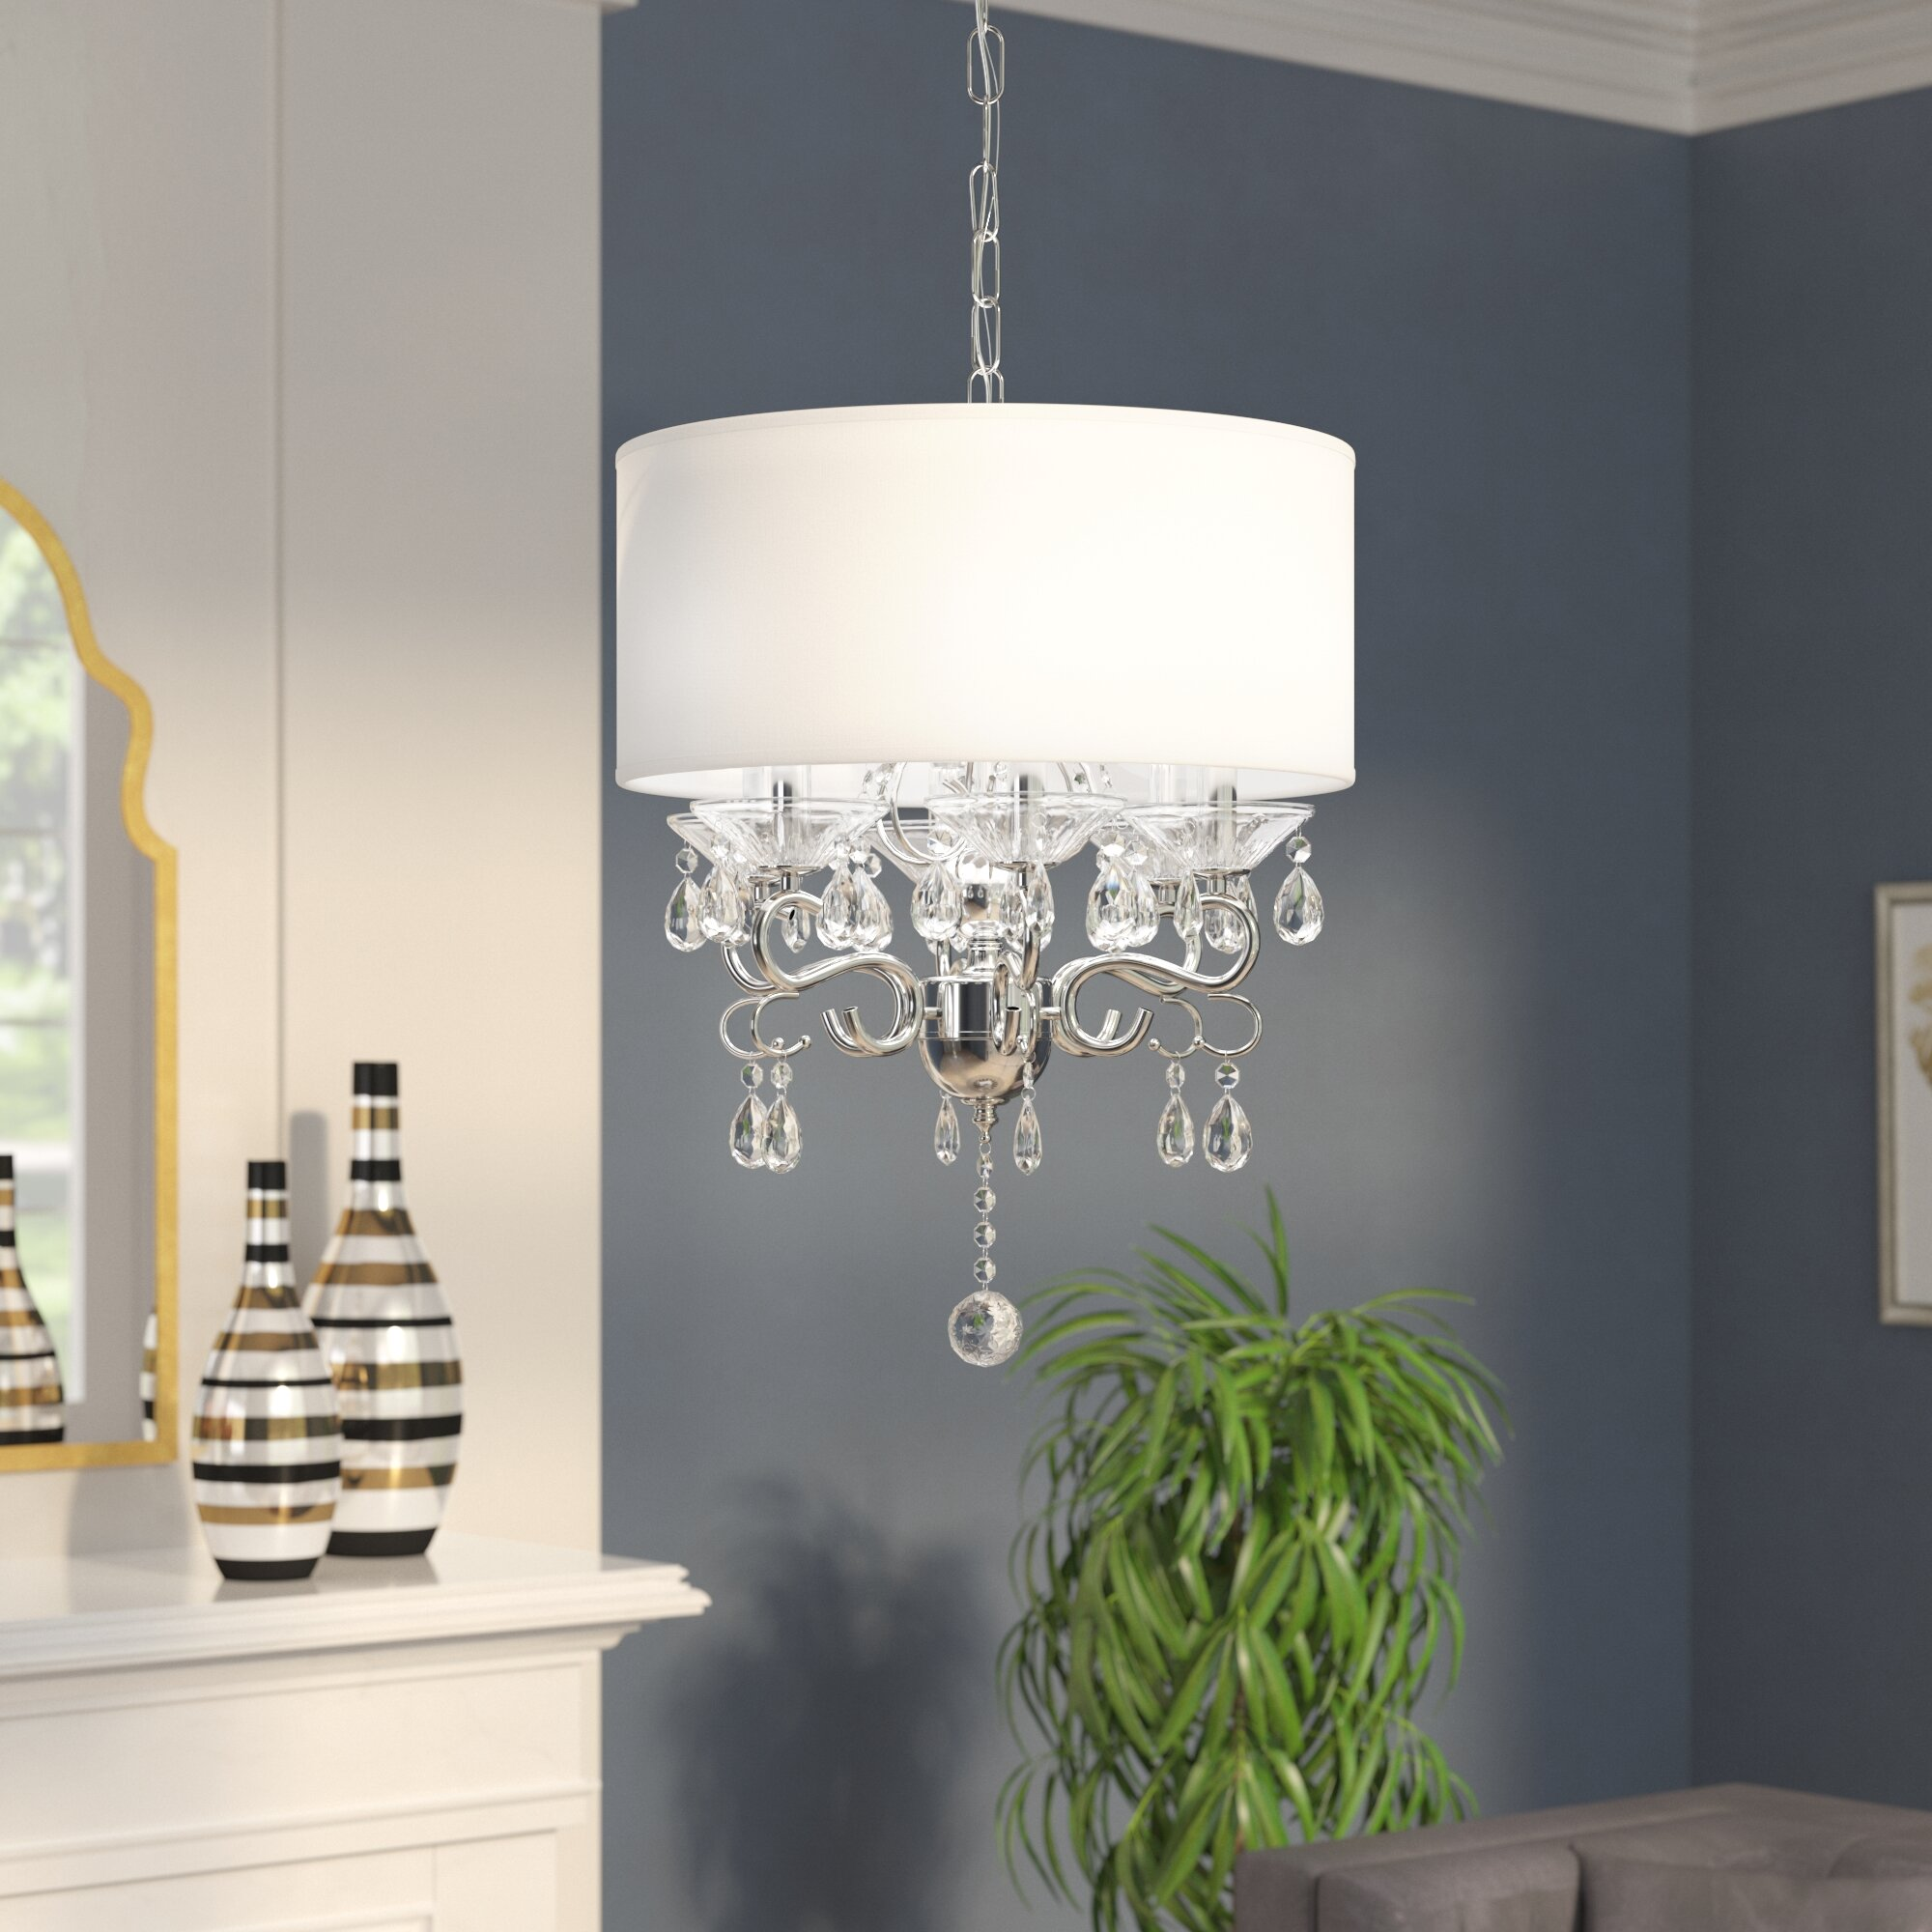 House of hampton emely 6 light chandelier reviews wayfair